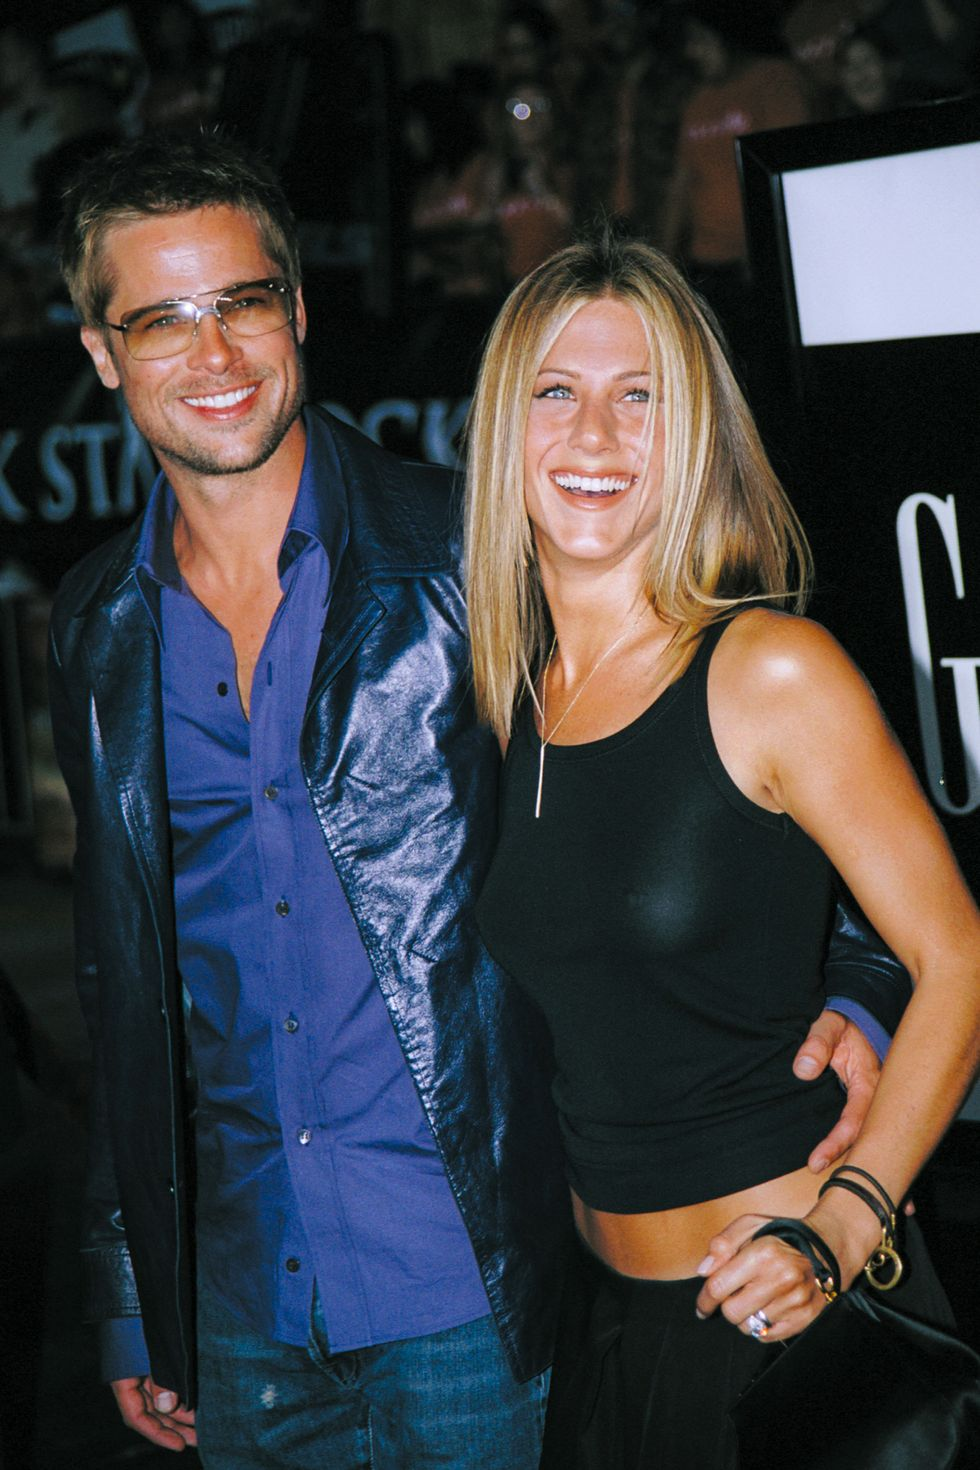 Relive Brad Pitt And Jennifer Aniston S Romance From The 90s To Their Flirtatious Current Relationship In 2020 Brad Pitt And Jennifer Brad Pitt Jennifer Aniston Brad Pitt